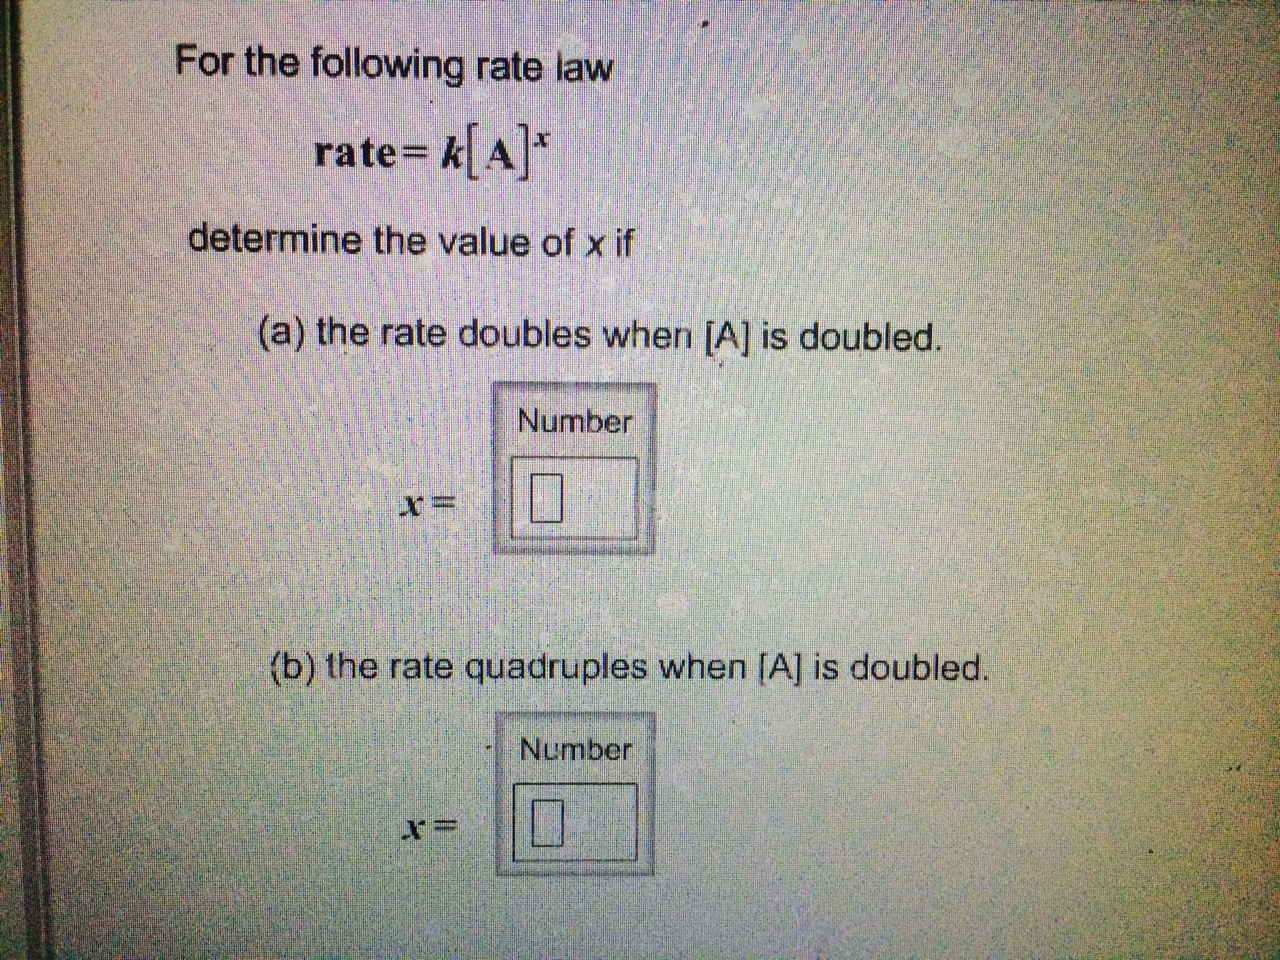 Chemistry archive december 02 2014 chegg for the following rate law ratekaxs determine the value of x if a the rate doubles when a is doubled x b the rate quadruples when a is gamestrikefo Images